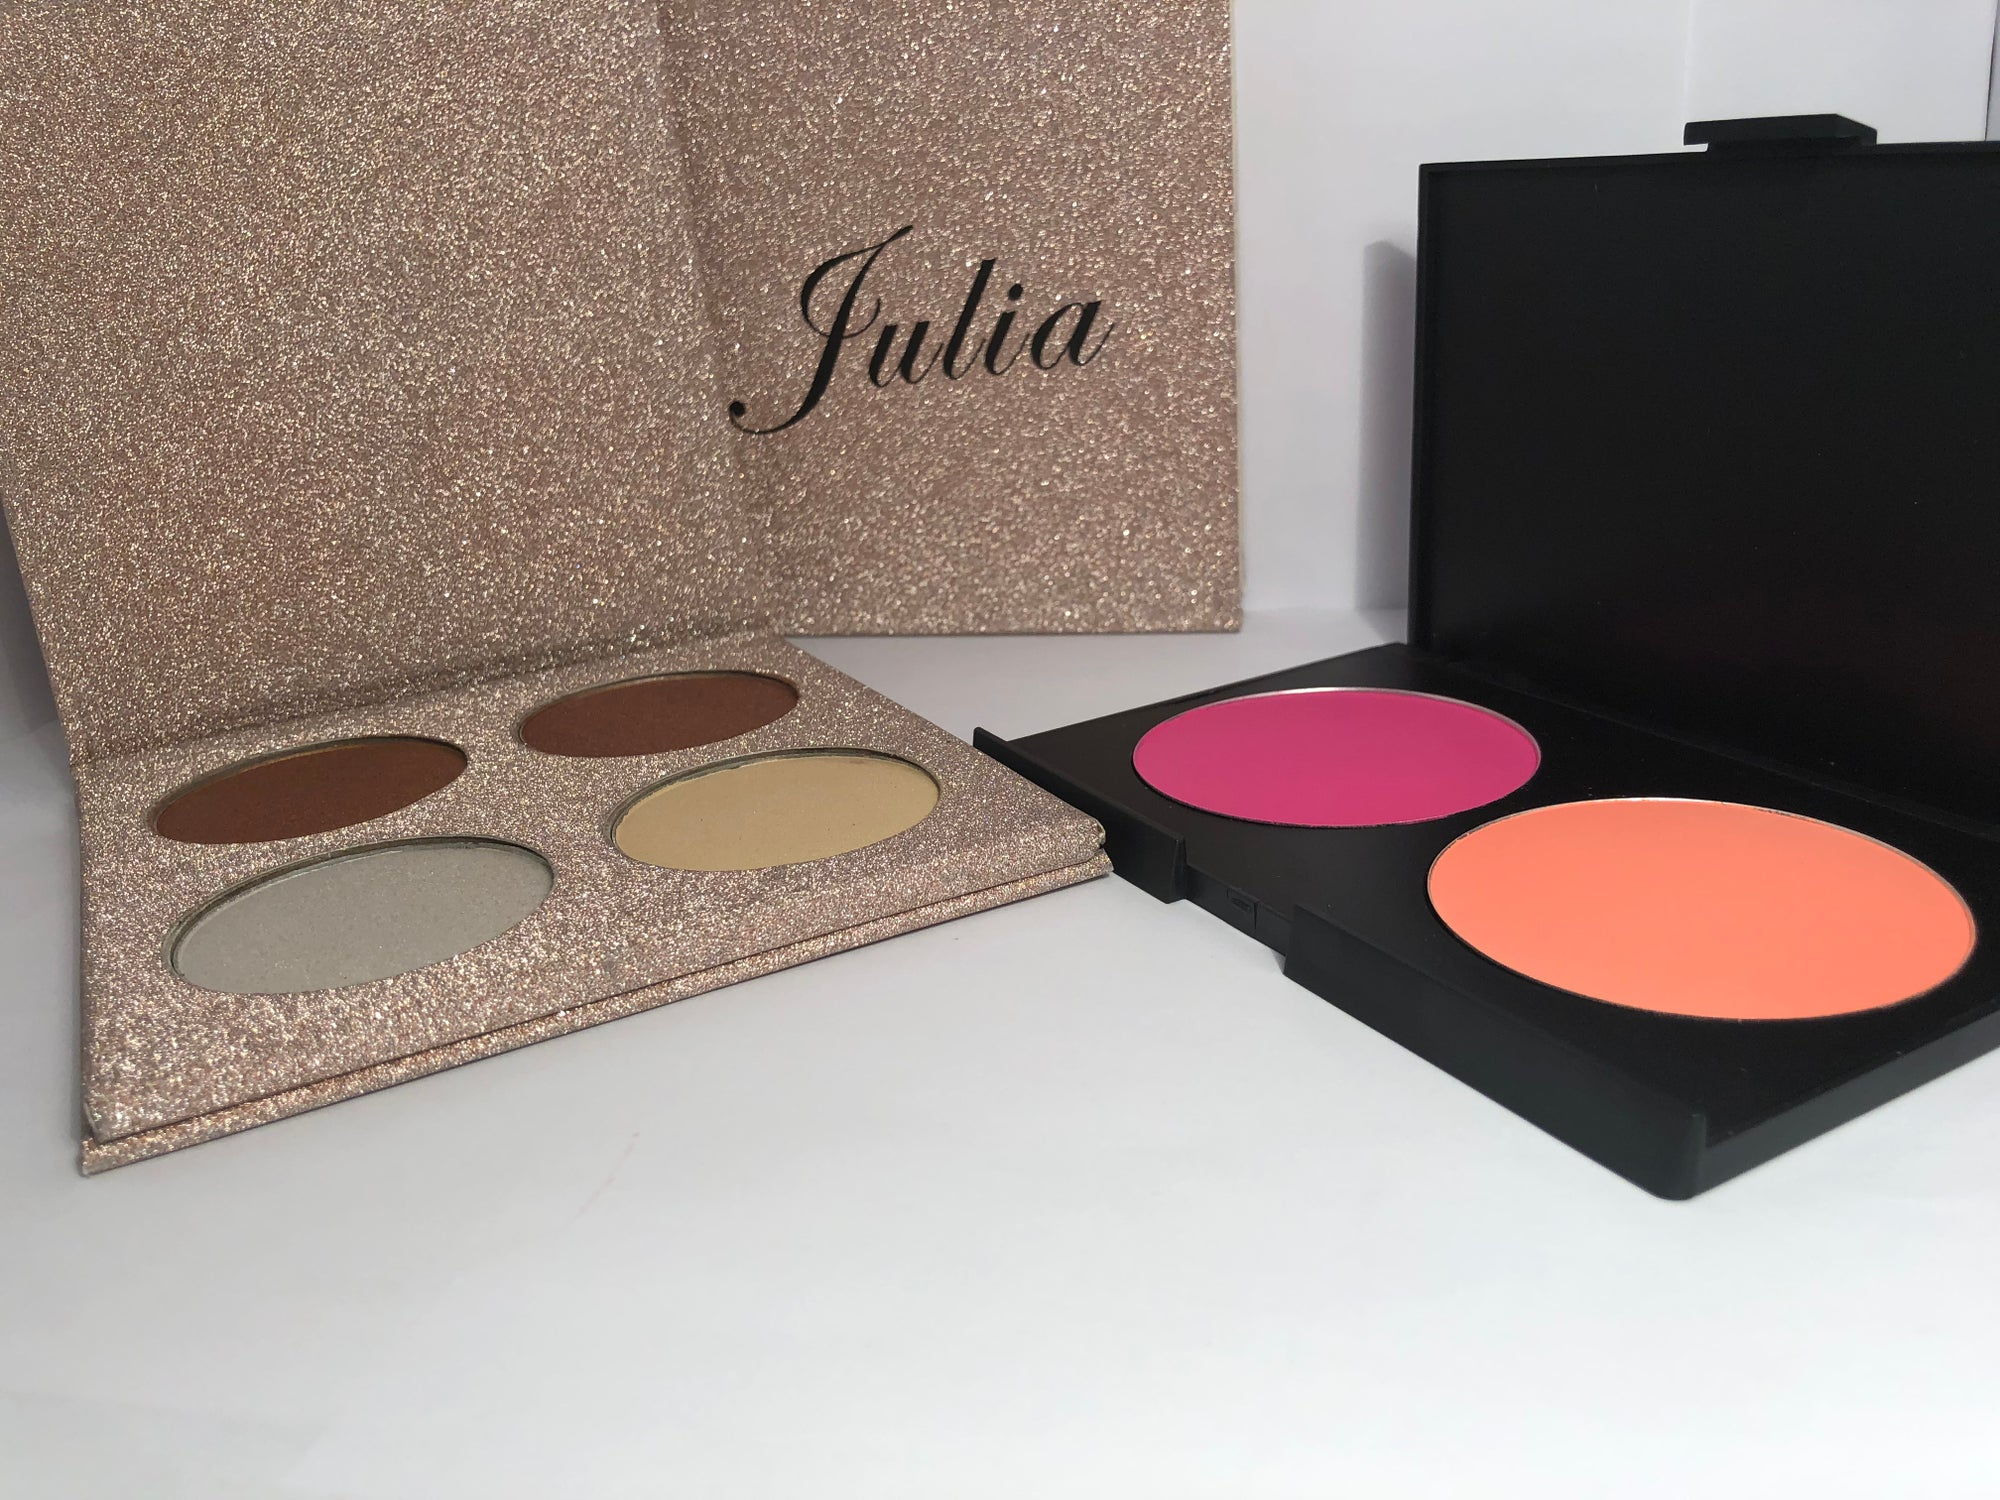 Image of Julia Sand of the Sea Highlighting and Bronzing Palette